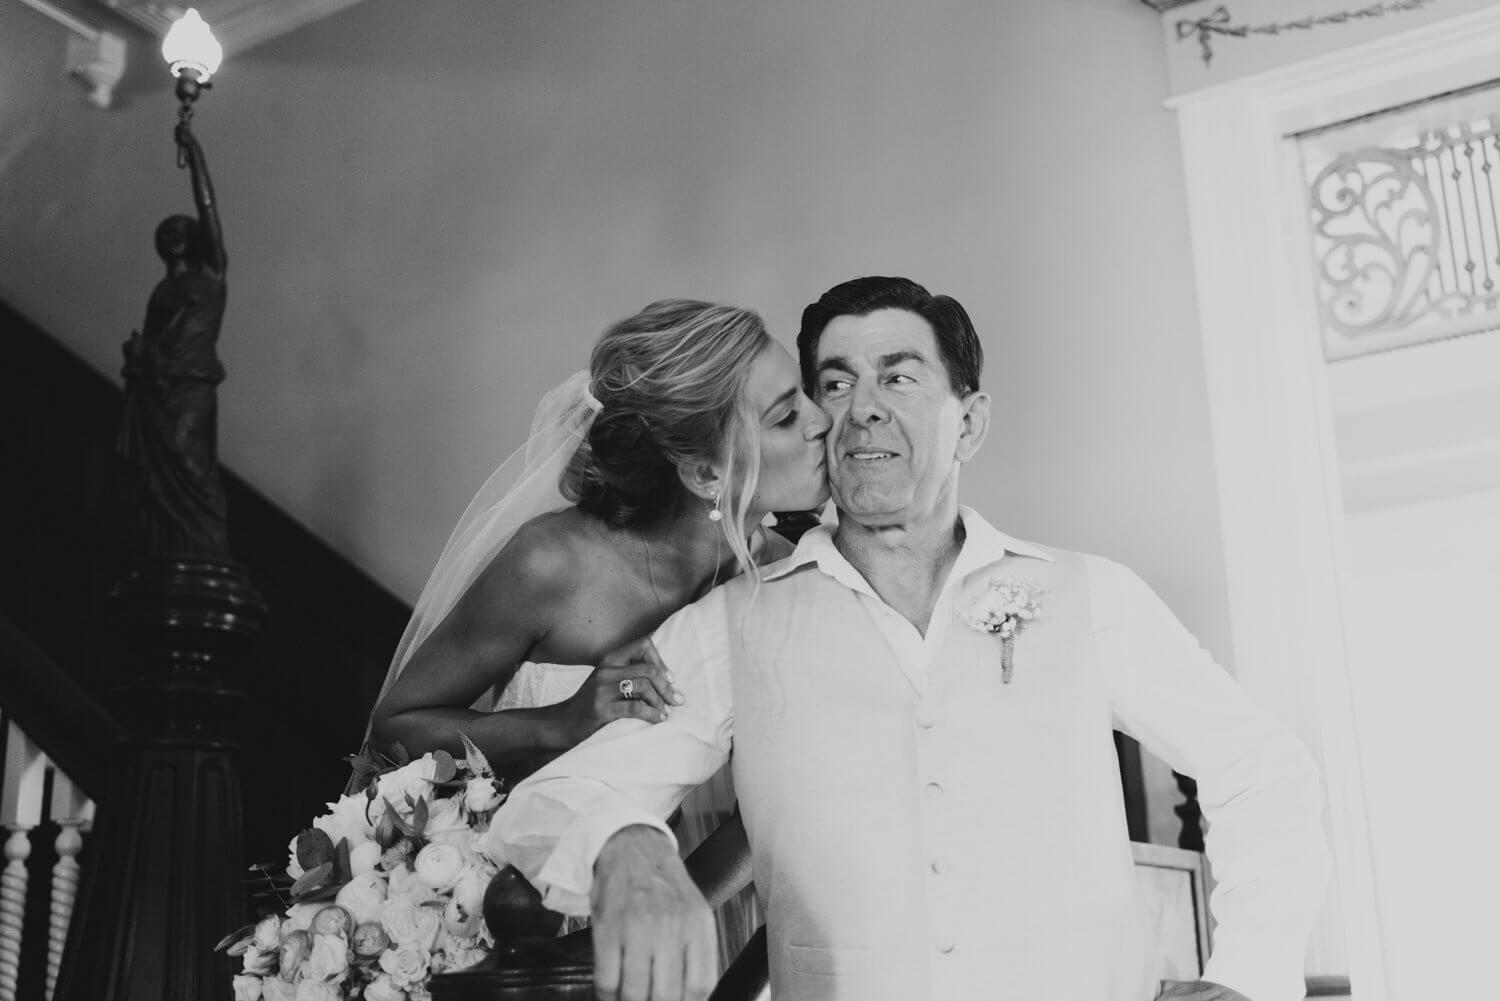 Freas Photography Southernmost House Wedding 45 - Boho Styled Key West Wedding at the Southernmost House in Key West, Florida